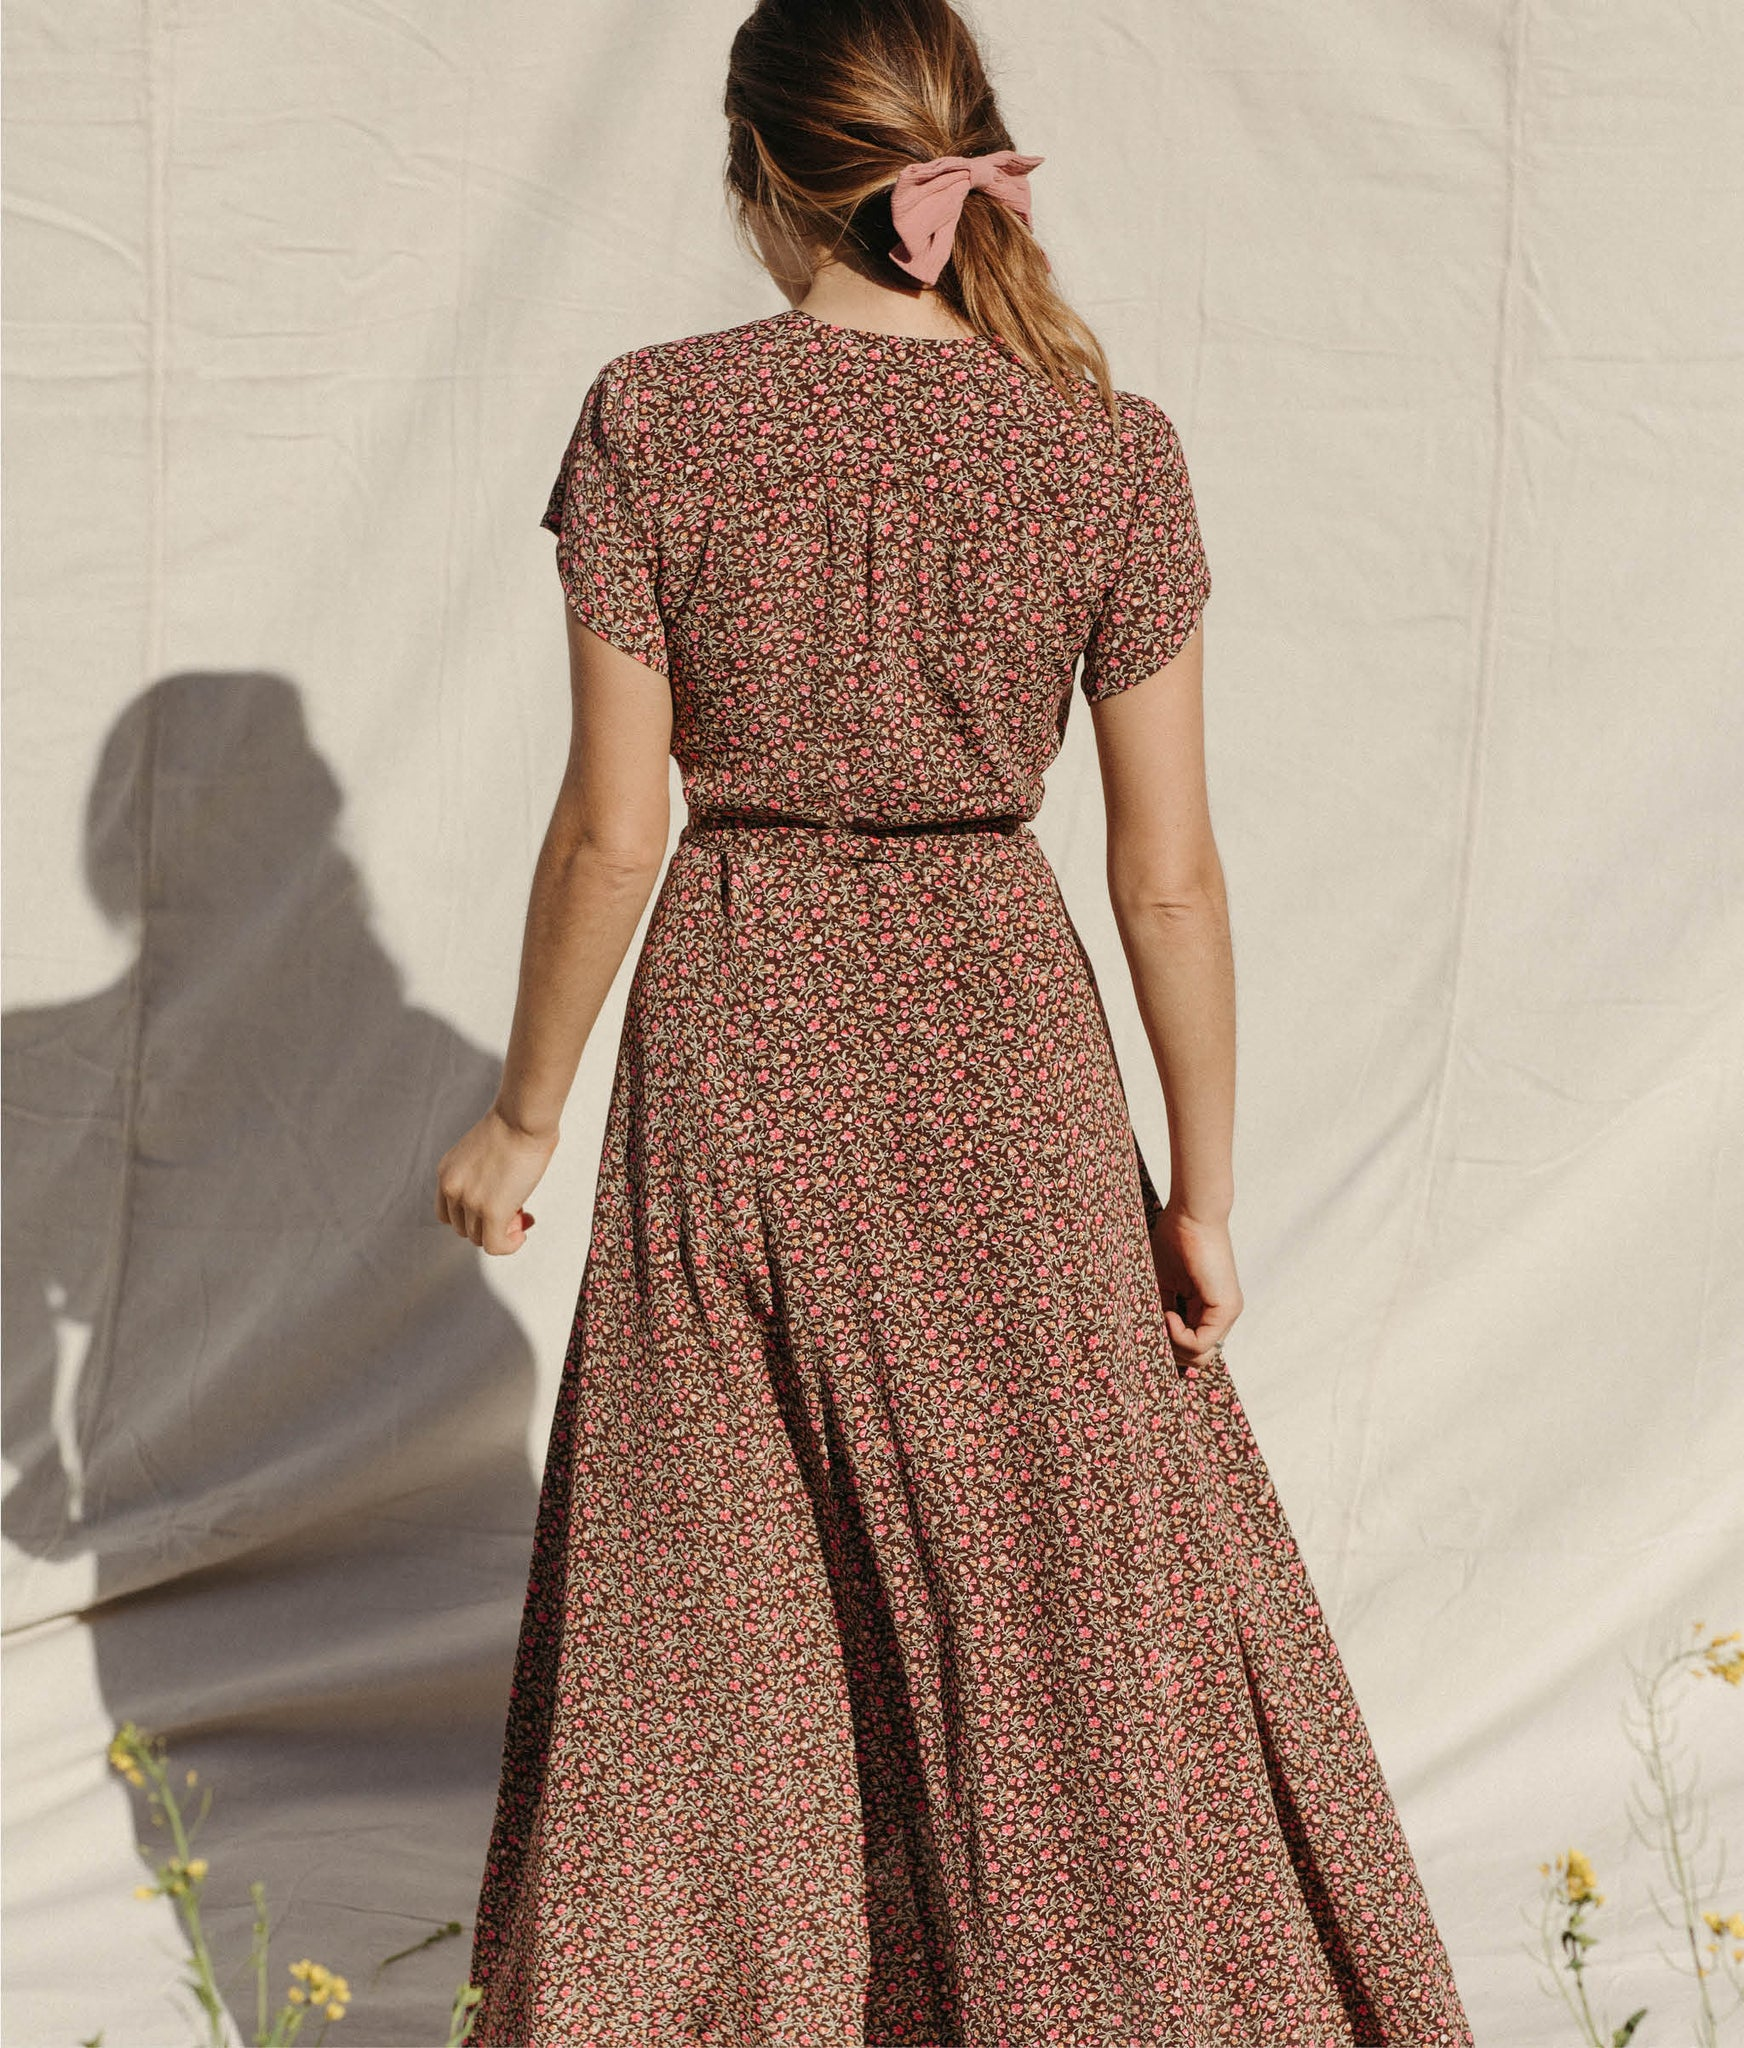 The Autumn Dress | Astrid Vine